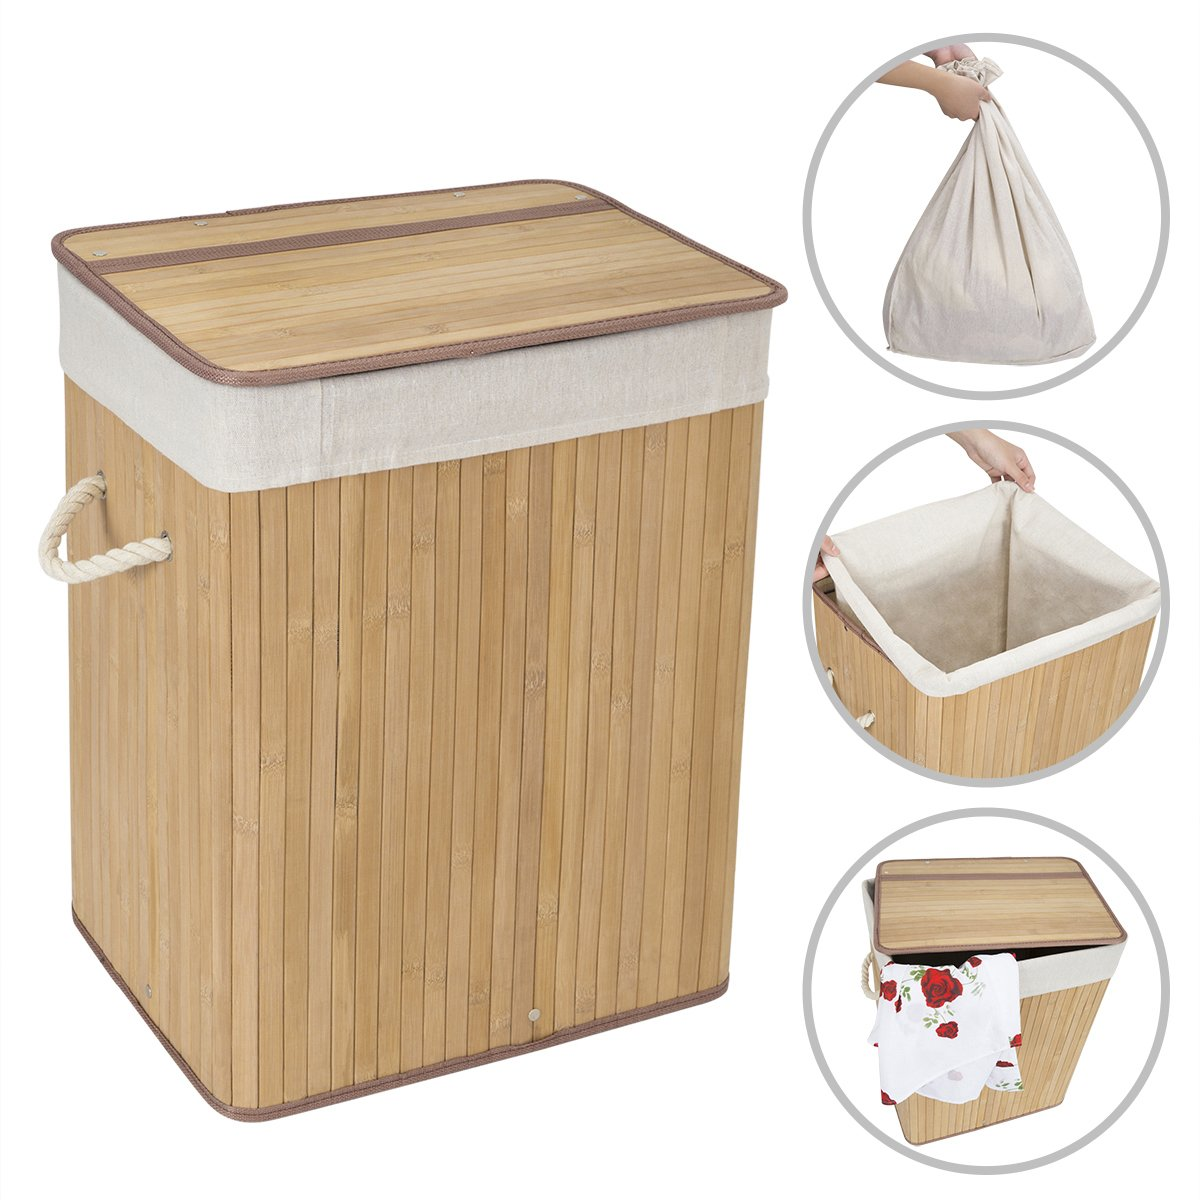 WOWLIVE Bamboo Laundry Hamper Basket with Lid Handles Removable LinerDirty Clothes Organizer Foldable Easily Transport Rectangular Washing Bin (61L,Natural)